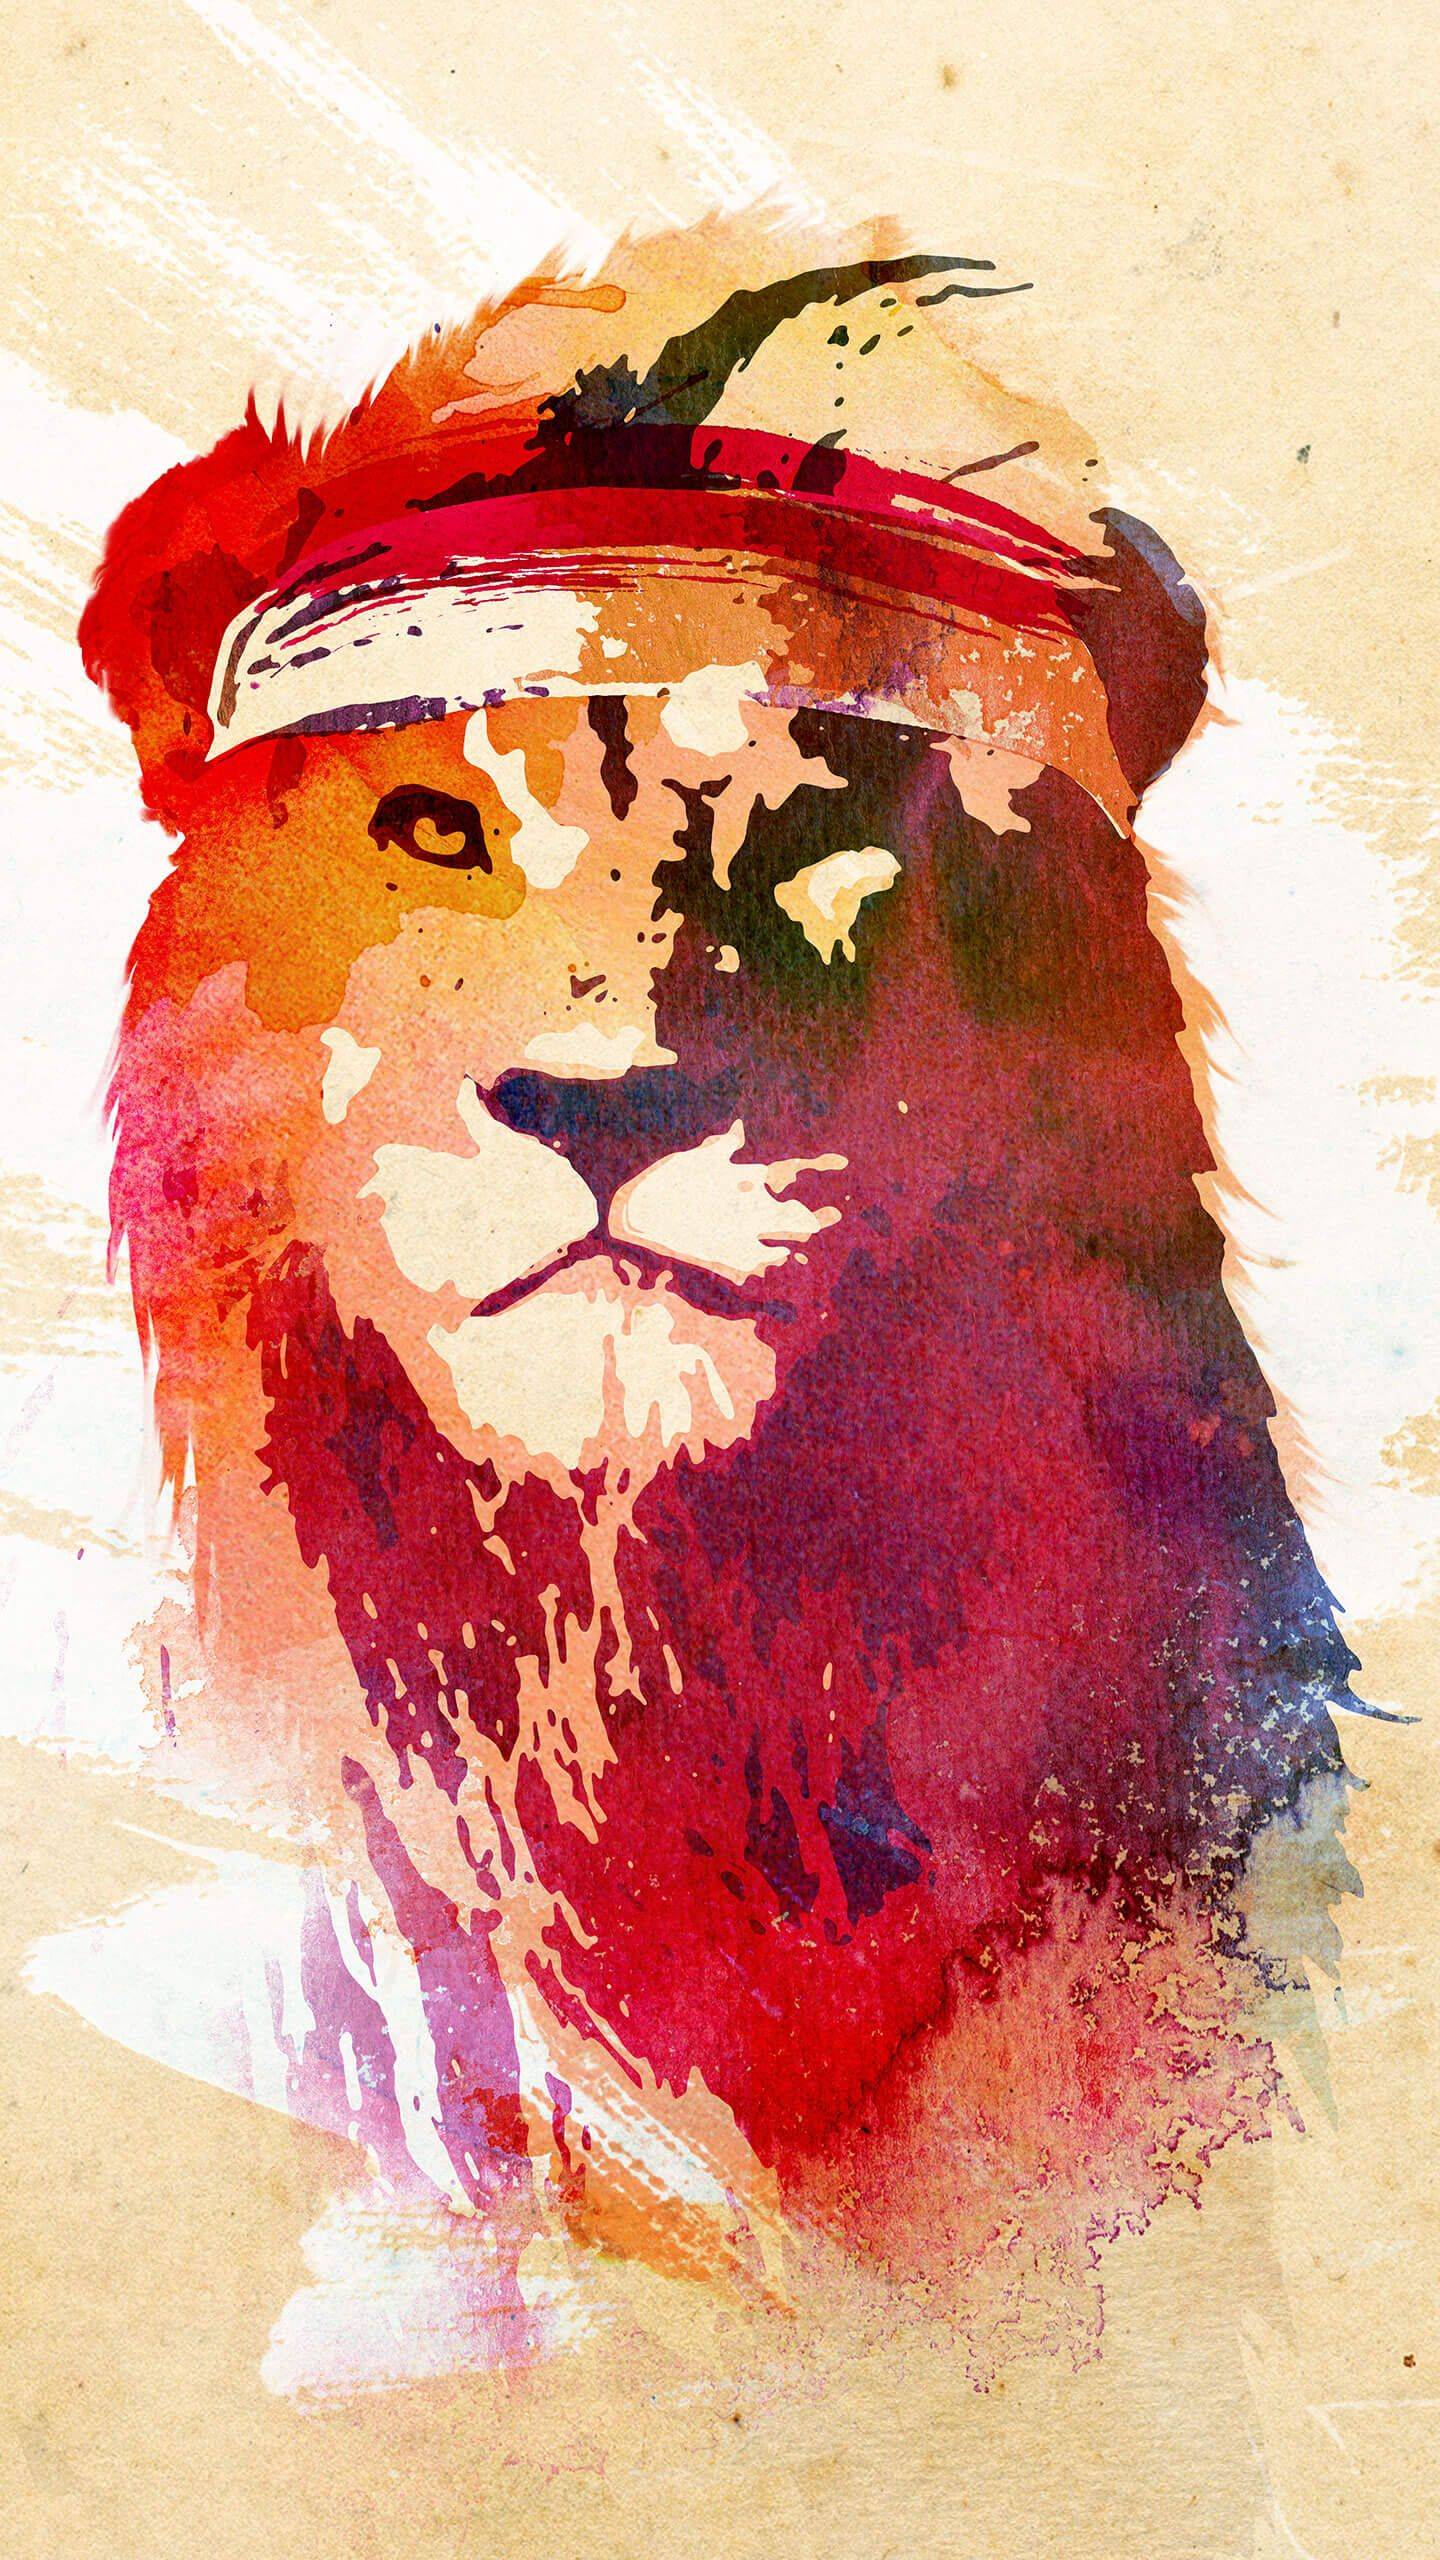 the lion wallpaper for android mobile